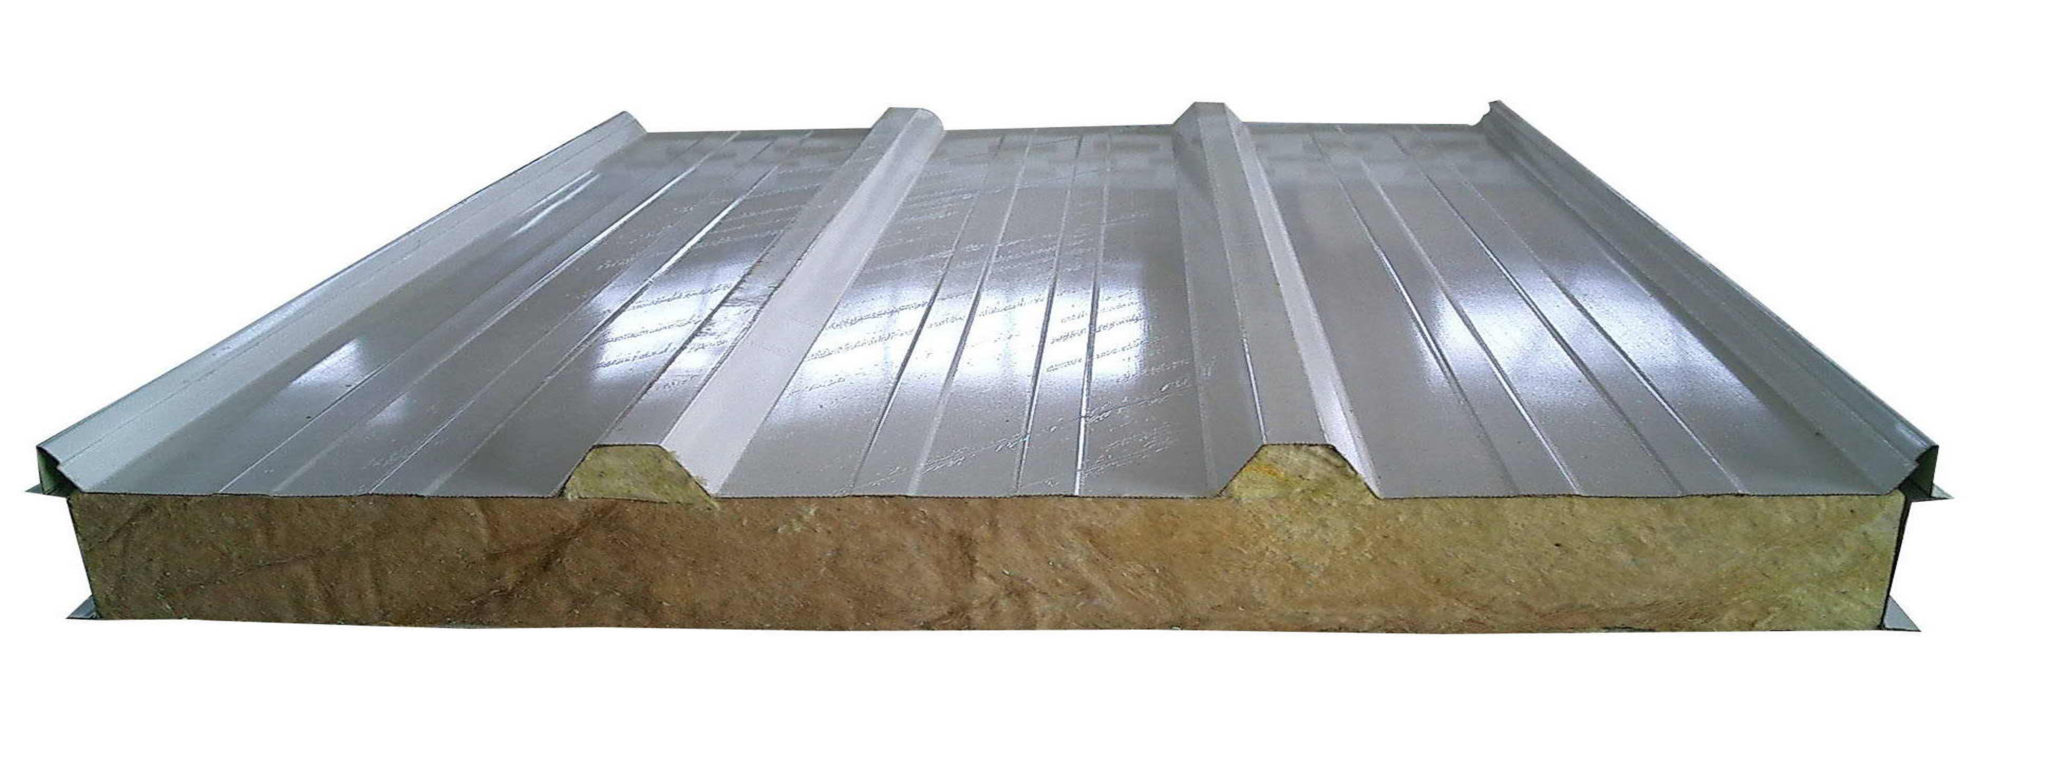 Insulated Roofing Panel Or Puf Insulated Roofing Sheet Manufacturers